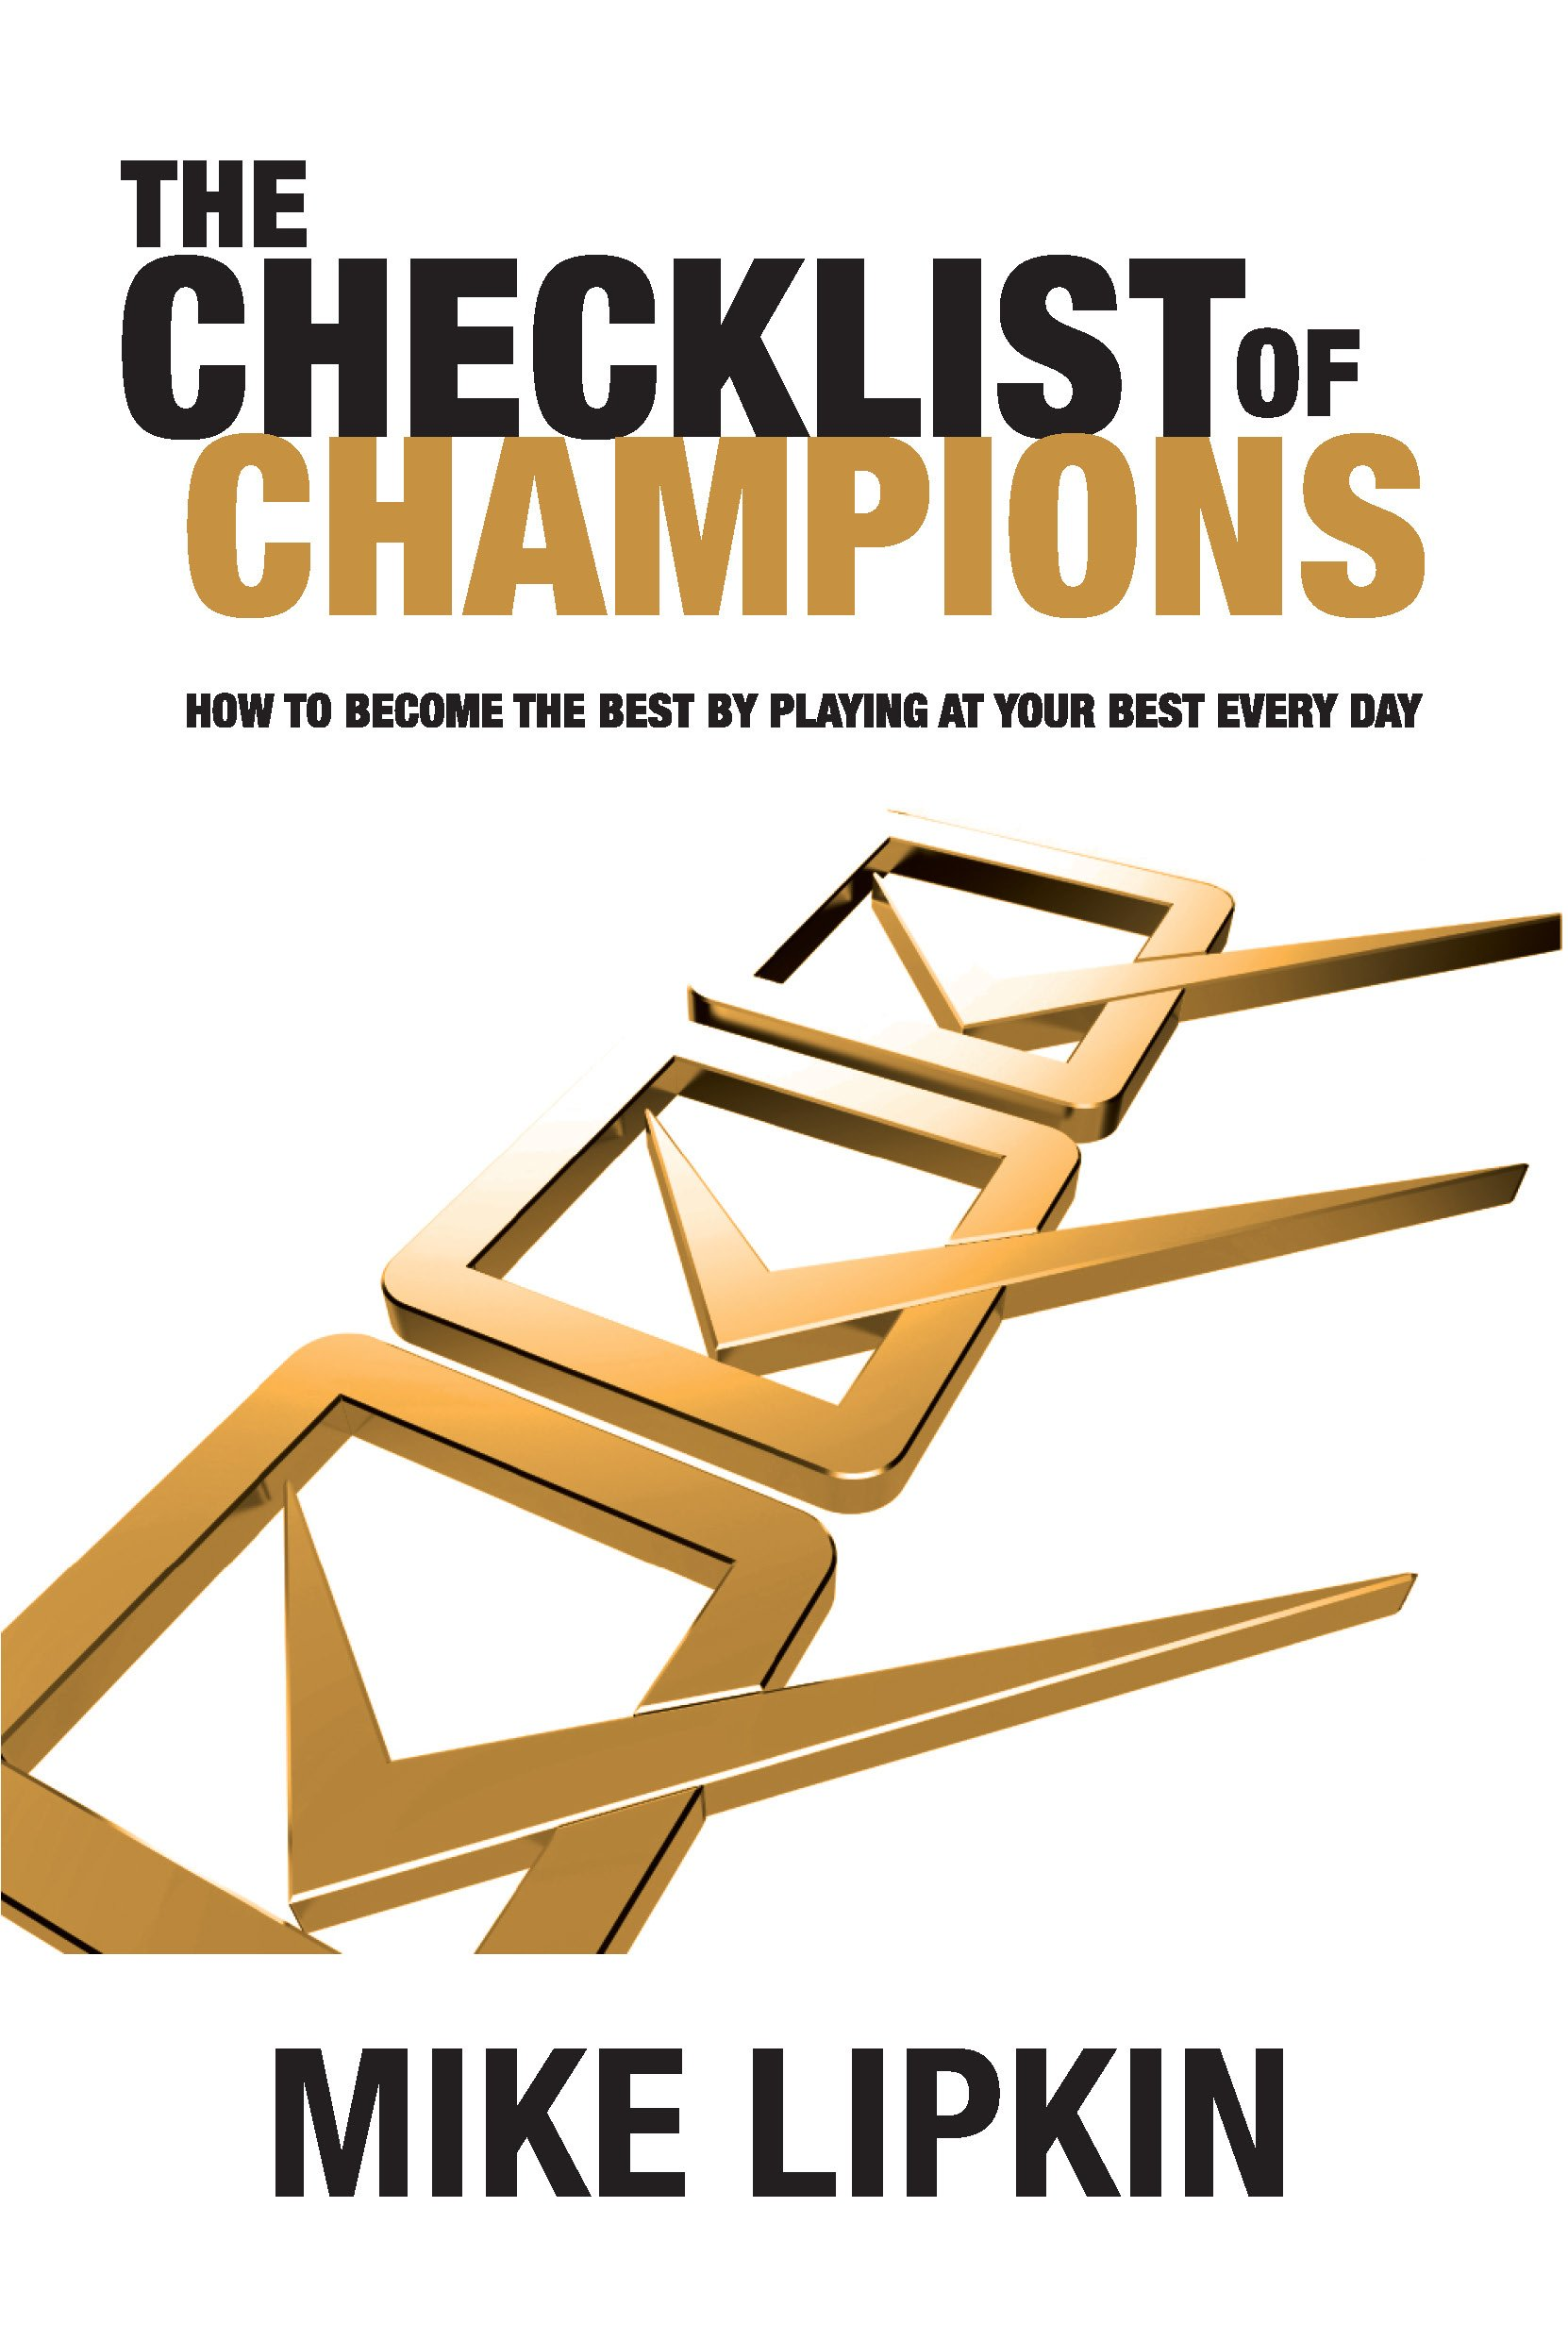 The Checklist of Champions: How to Become the Best by Playing at Your Best Every Day